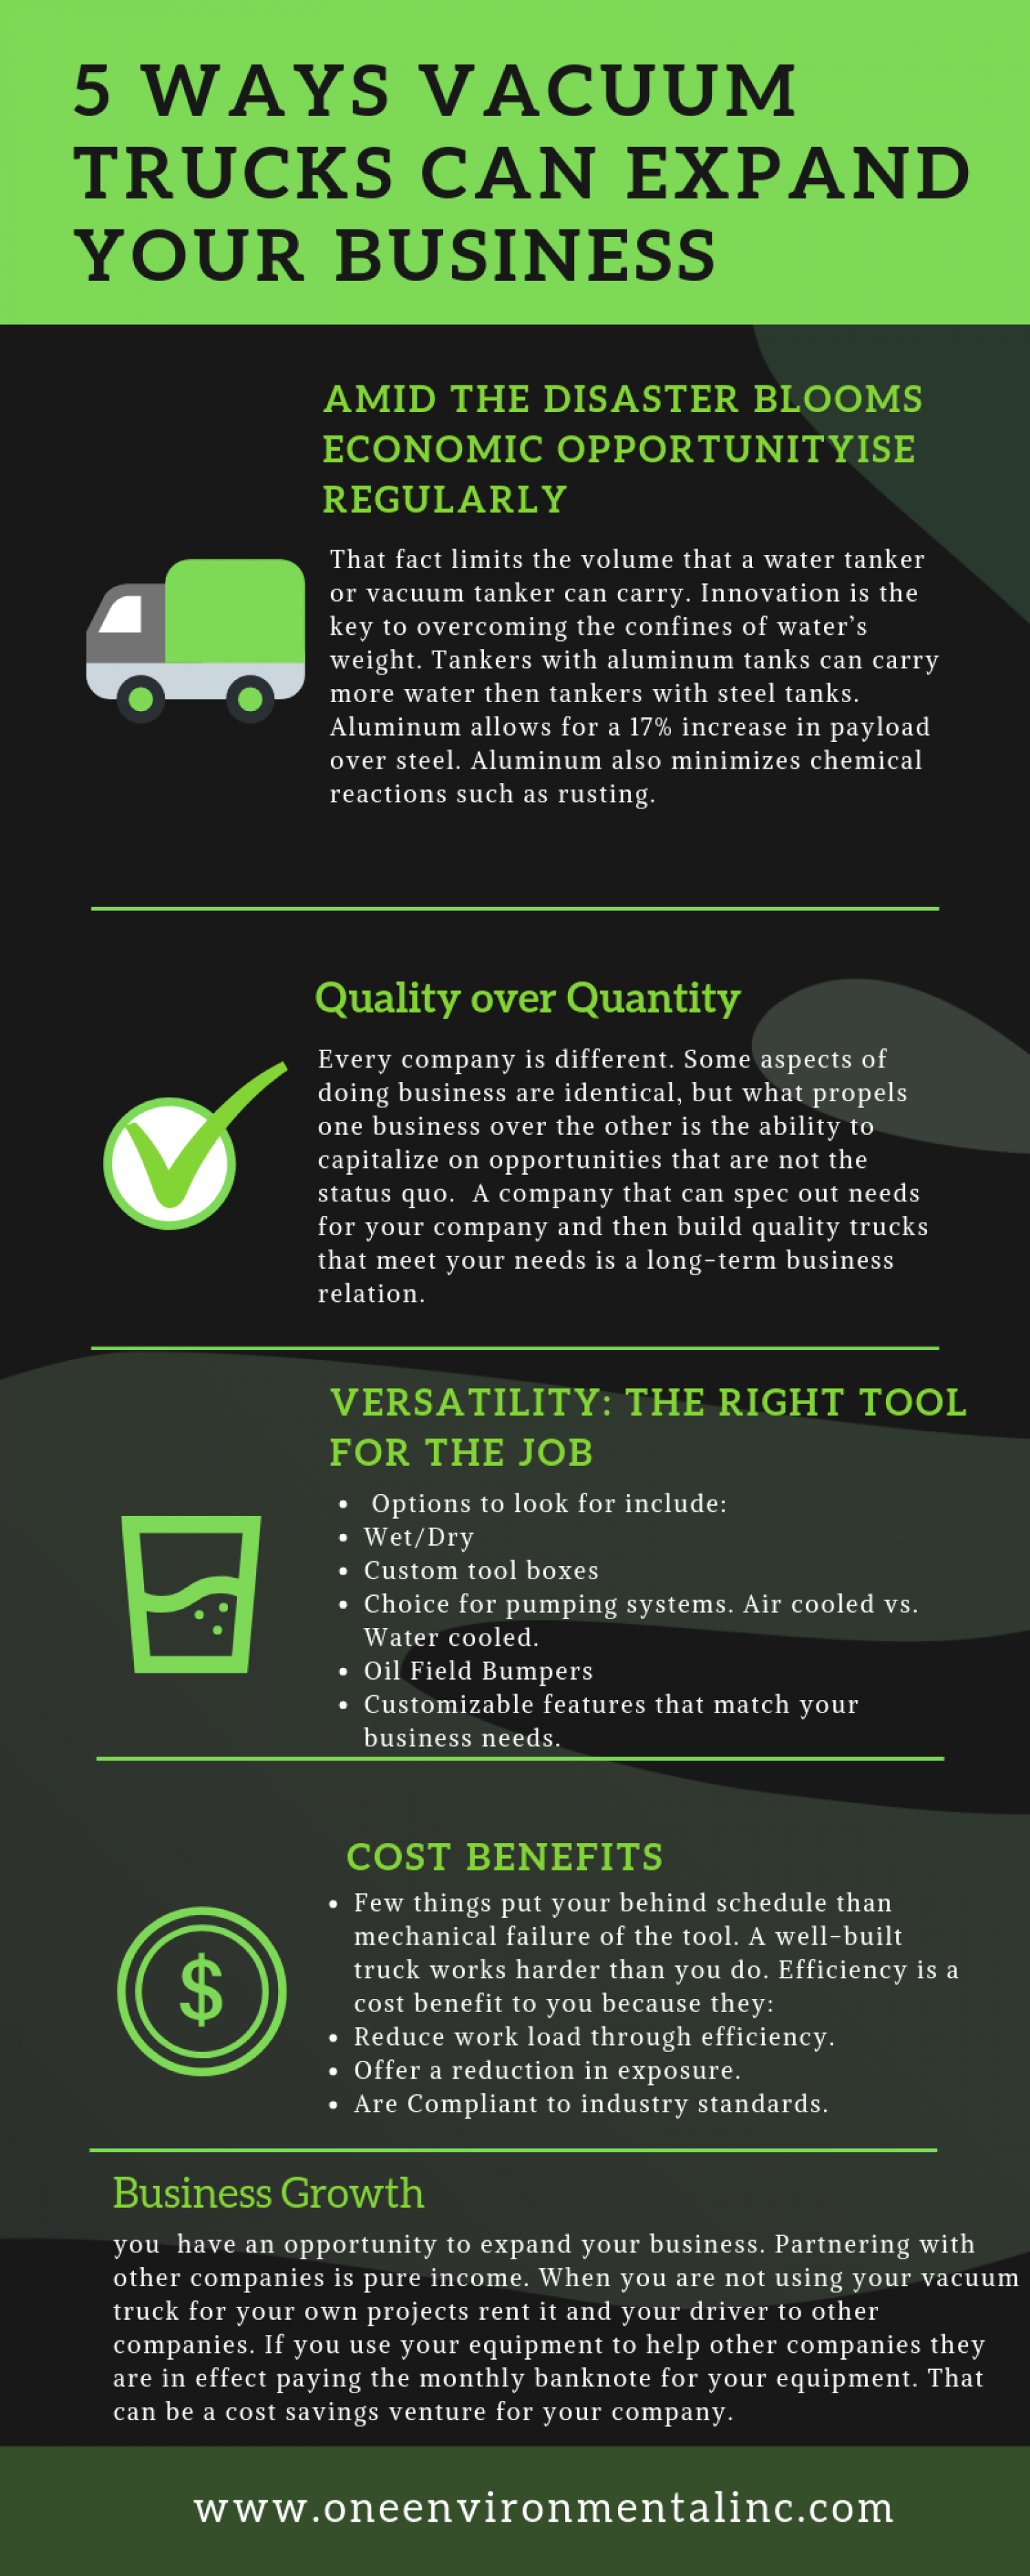 5 Ways vacuum trucks can expand your business Infographic